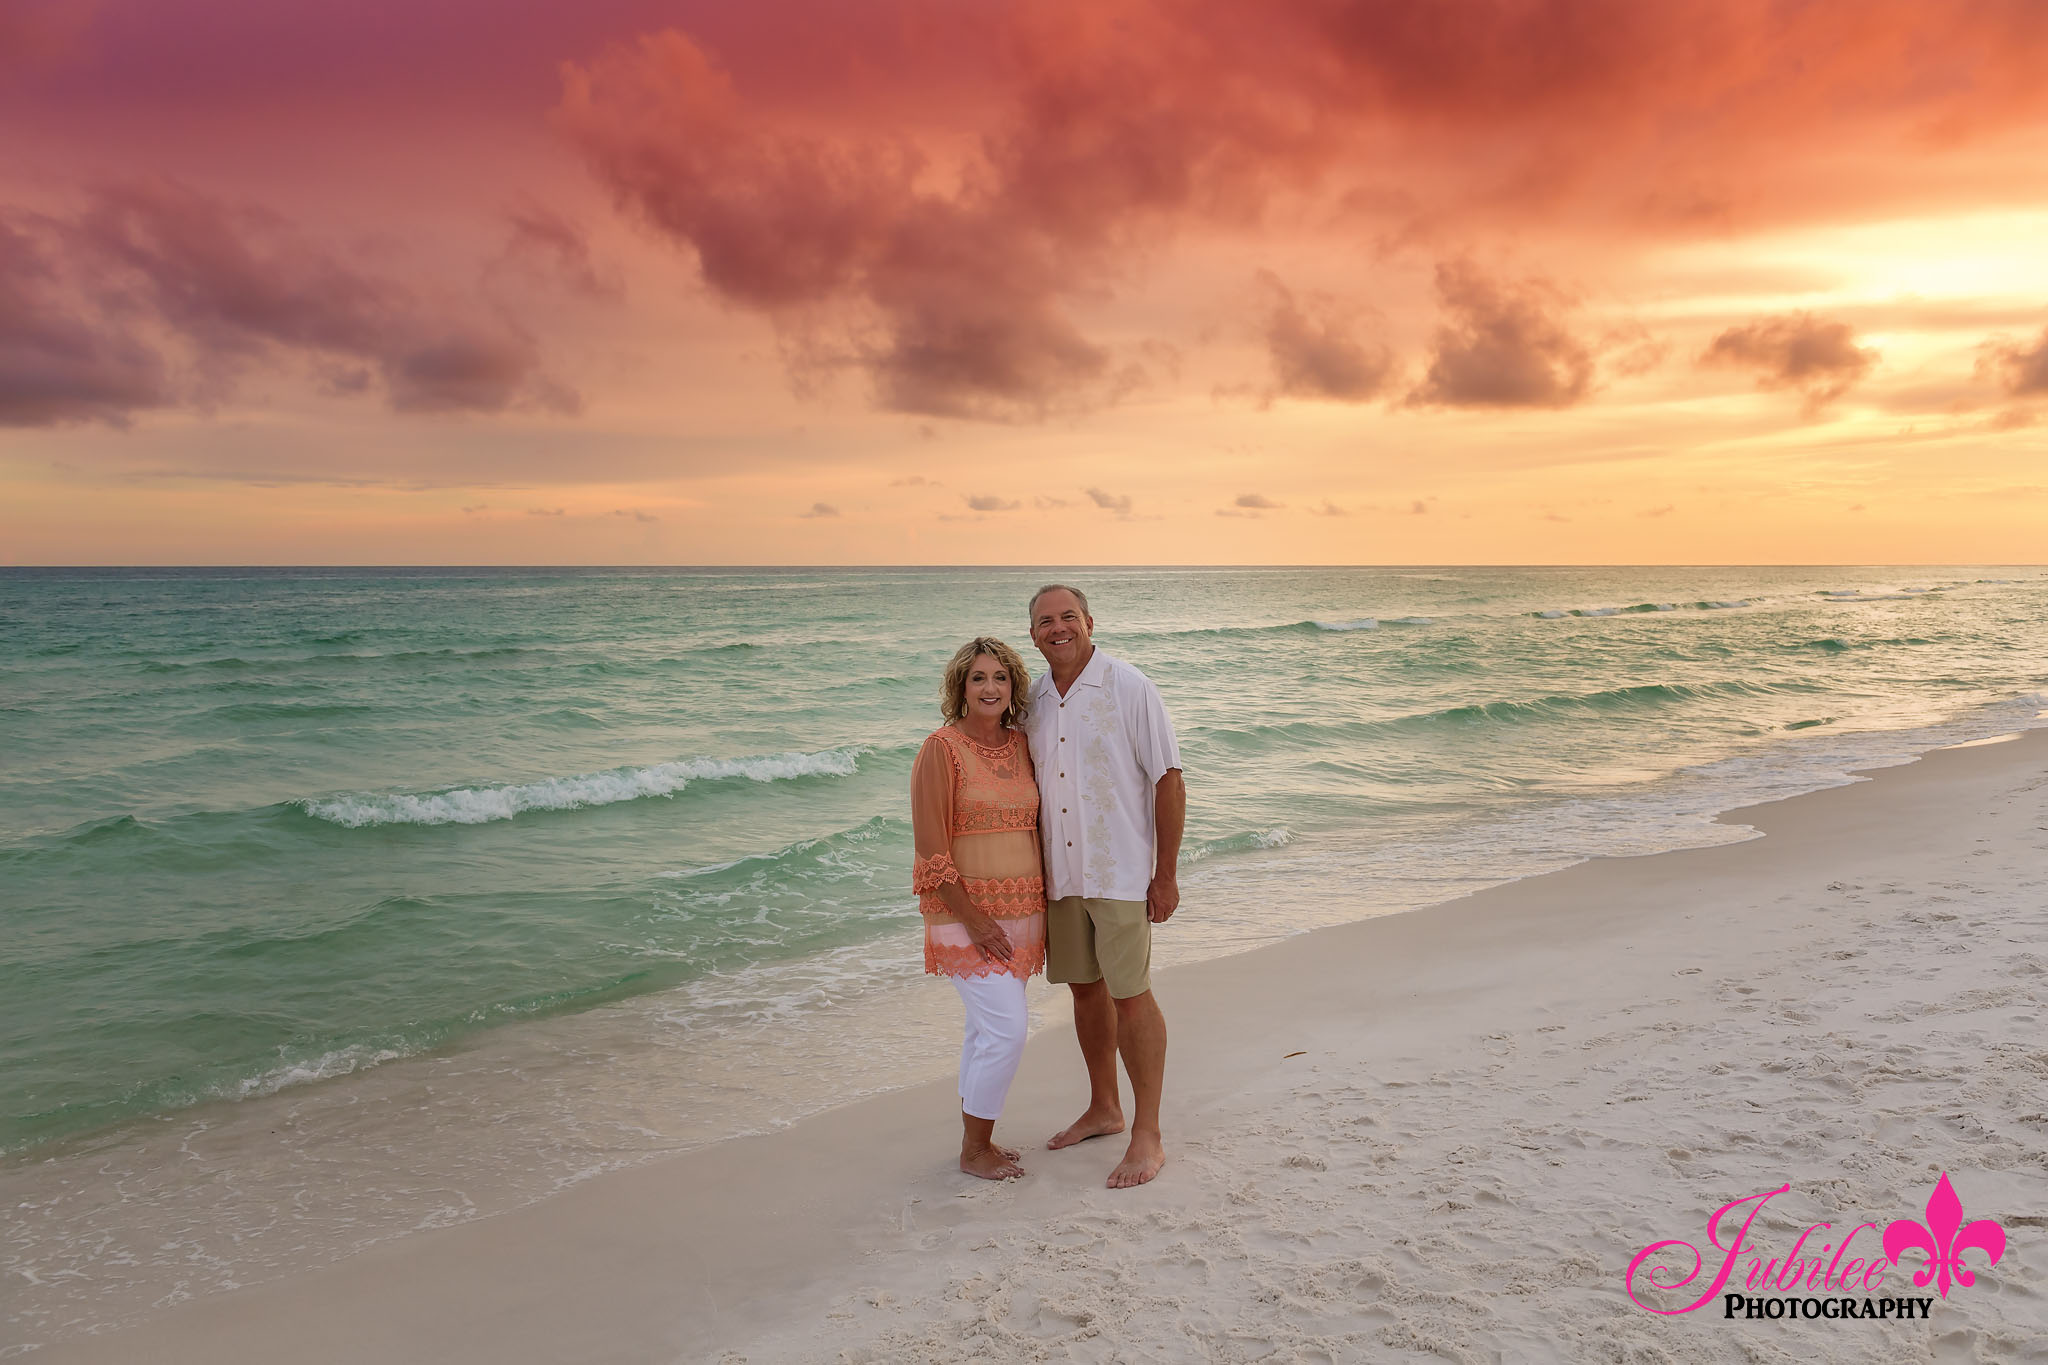 destin_photographer_6032